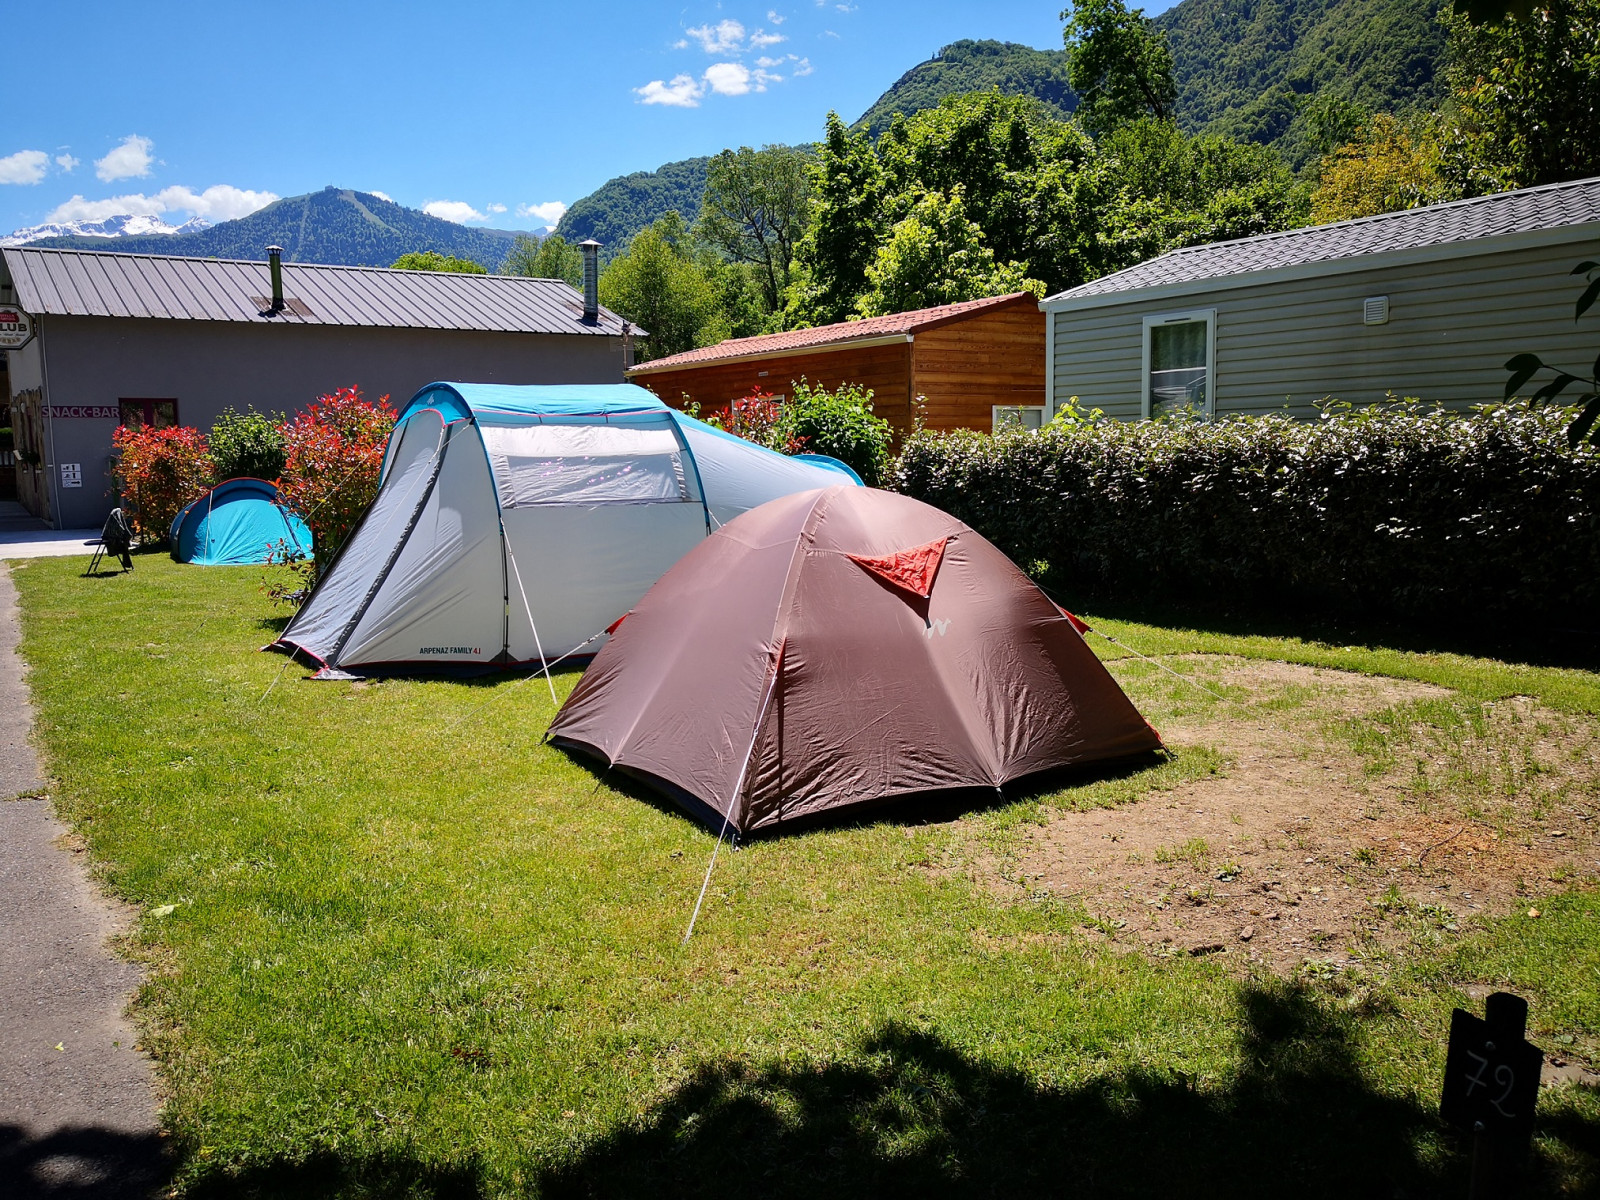 ACCUEIL CAMPING LE PYRENEEN